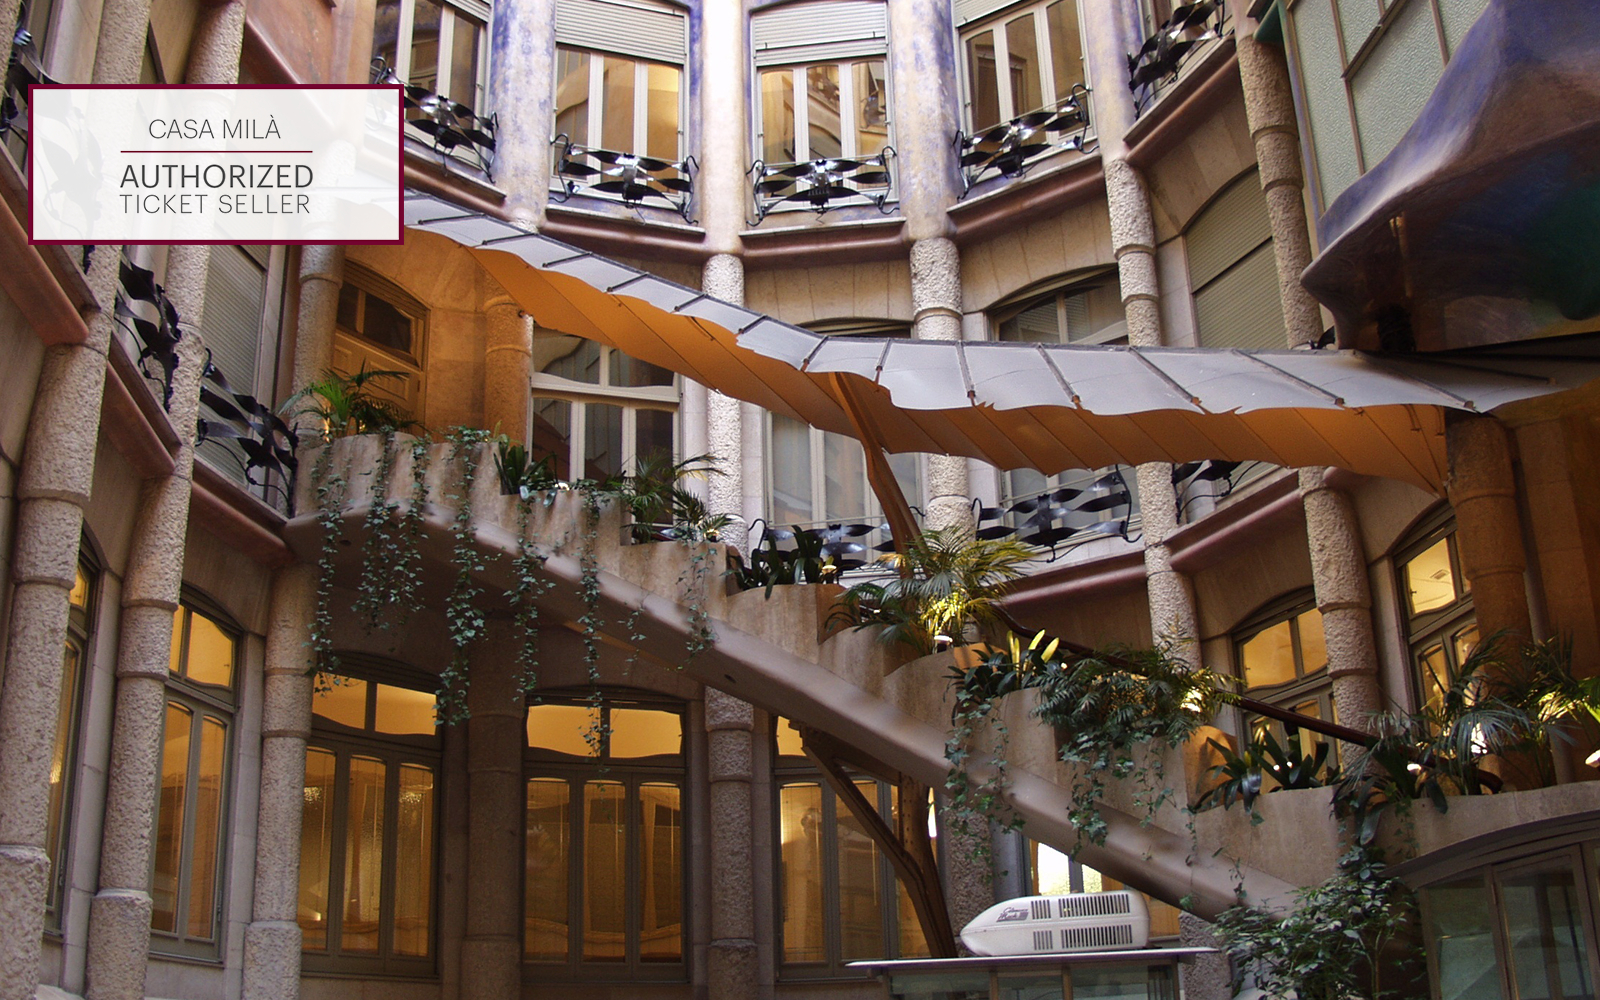 1b319853 51e1 42c6 b532 e62d7e3e666c 3394 barcelona casa mila la pedrera skip the line access 02